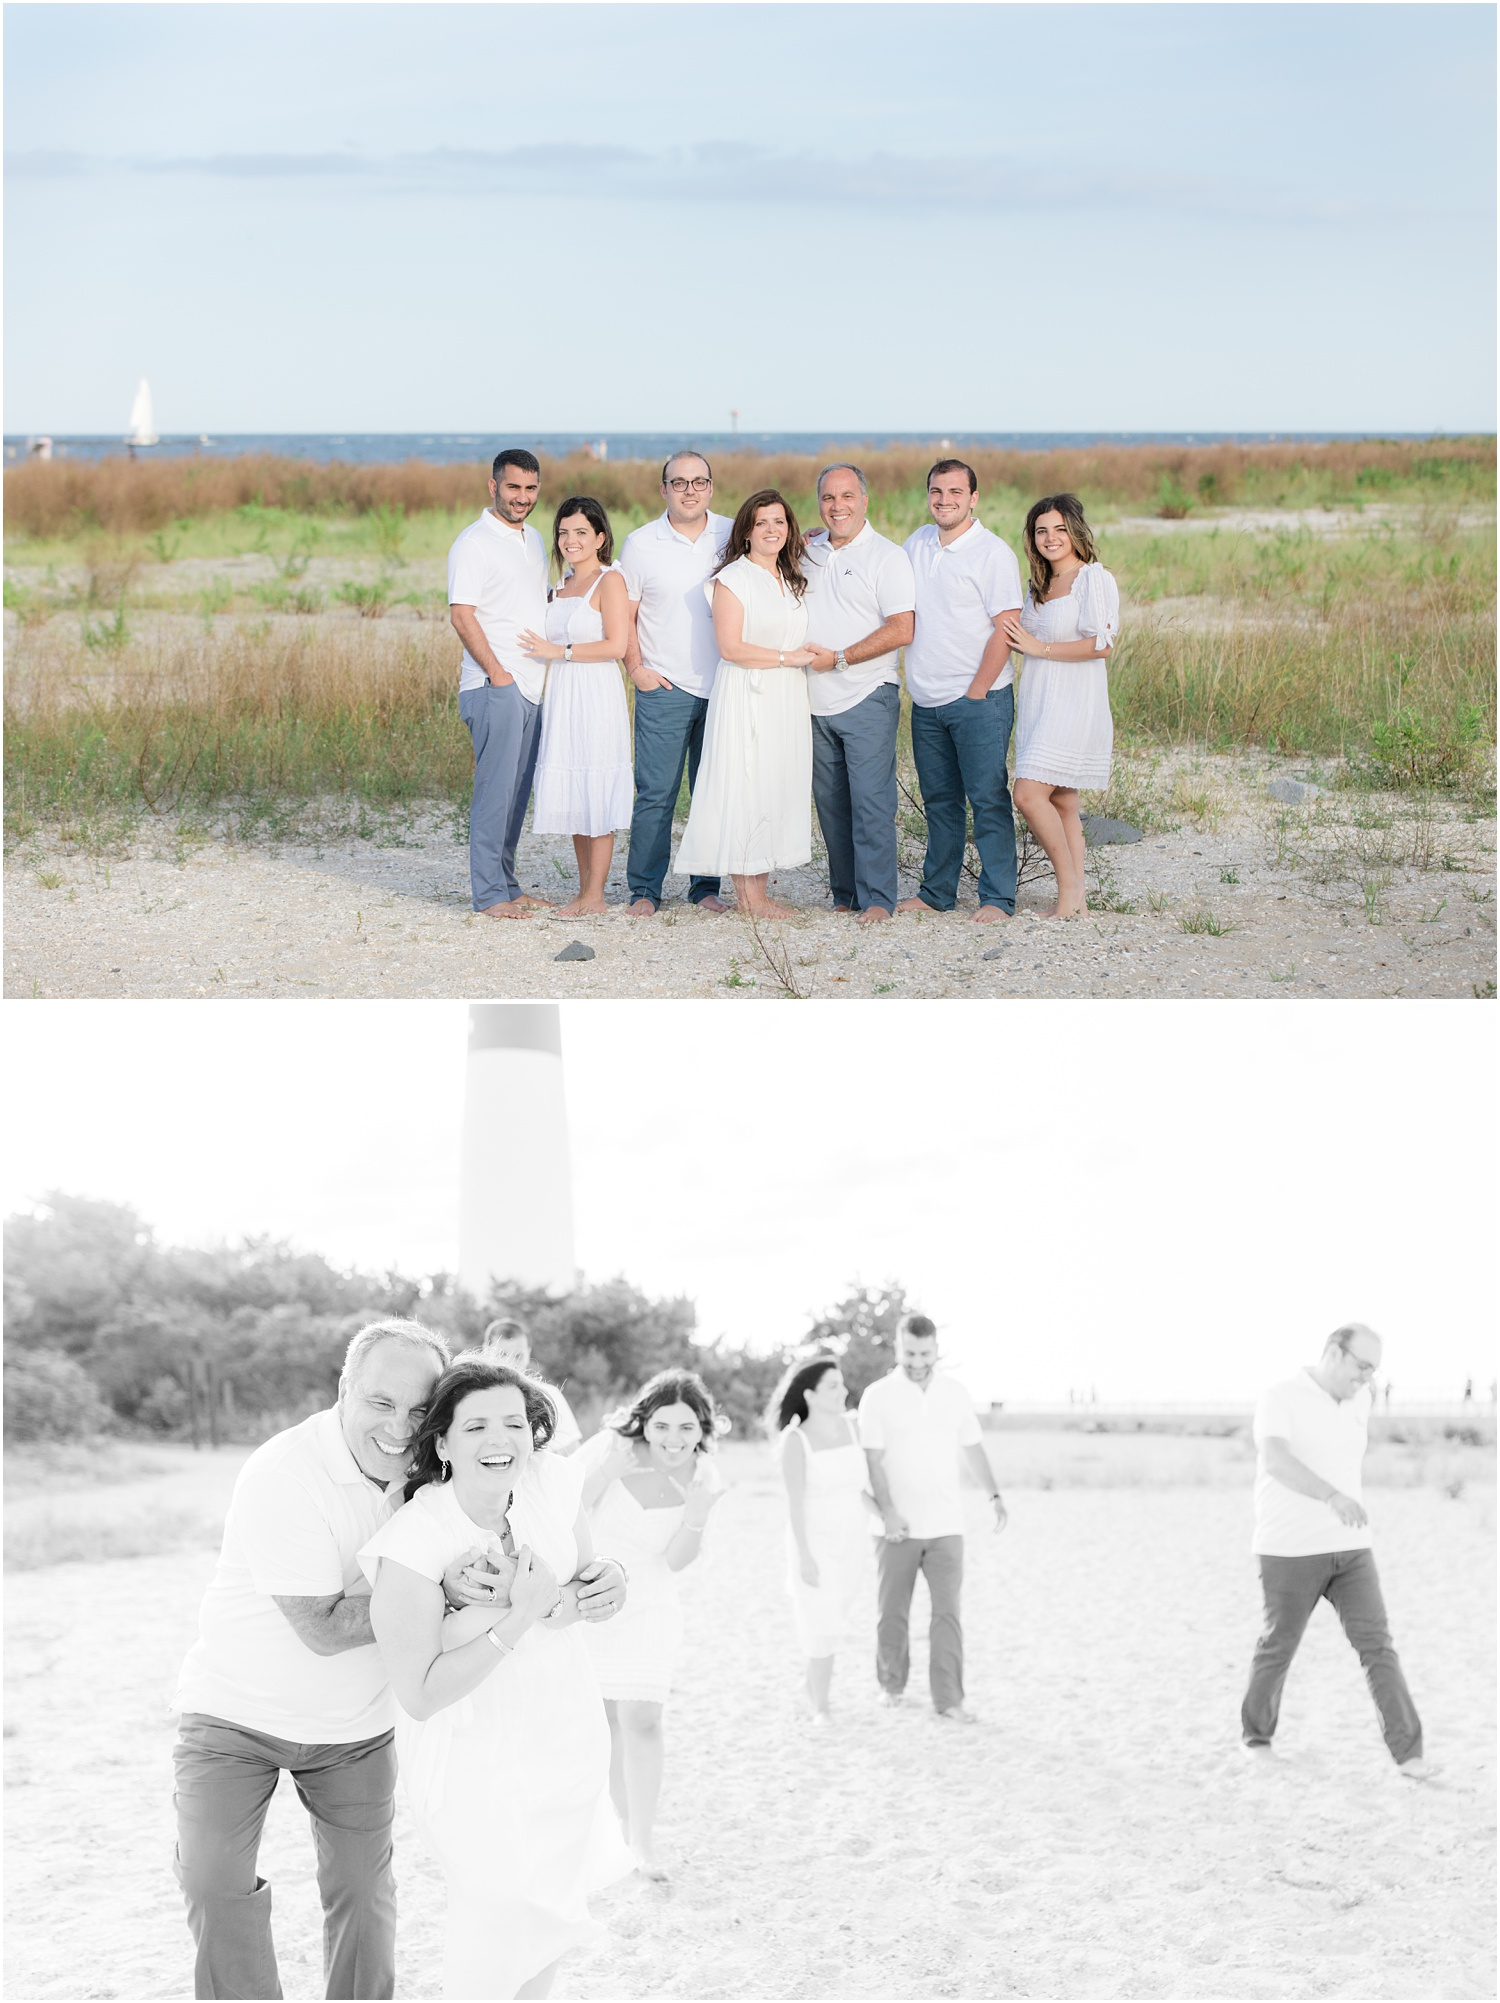 Family photos at Barnegat Lighthouse State Park in LBI